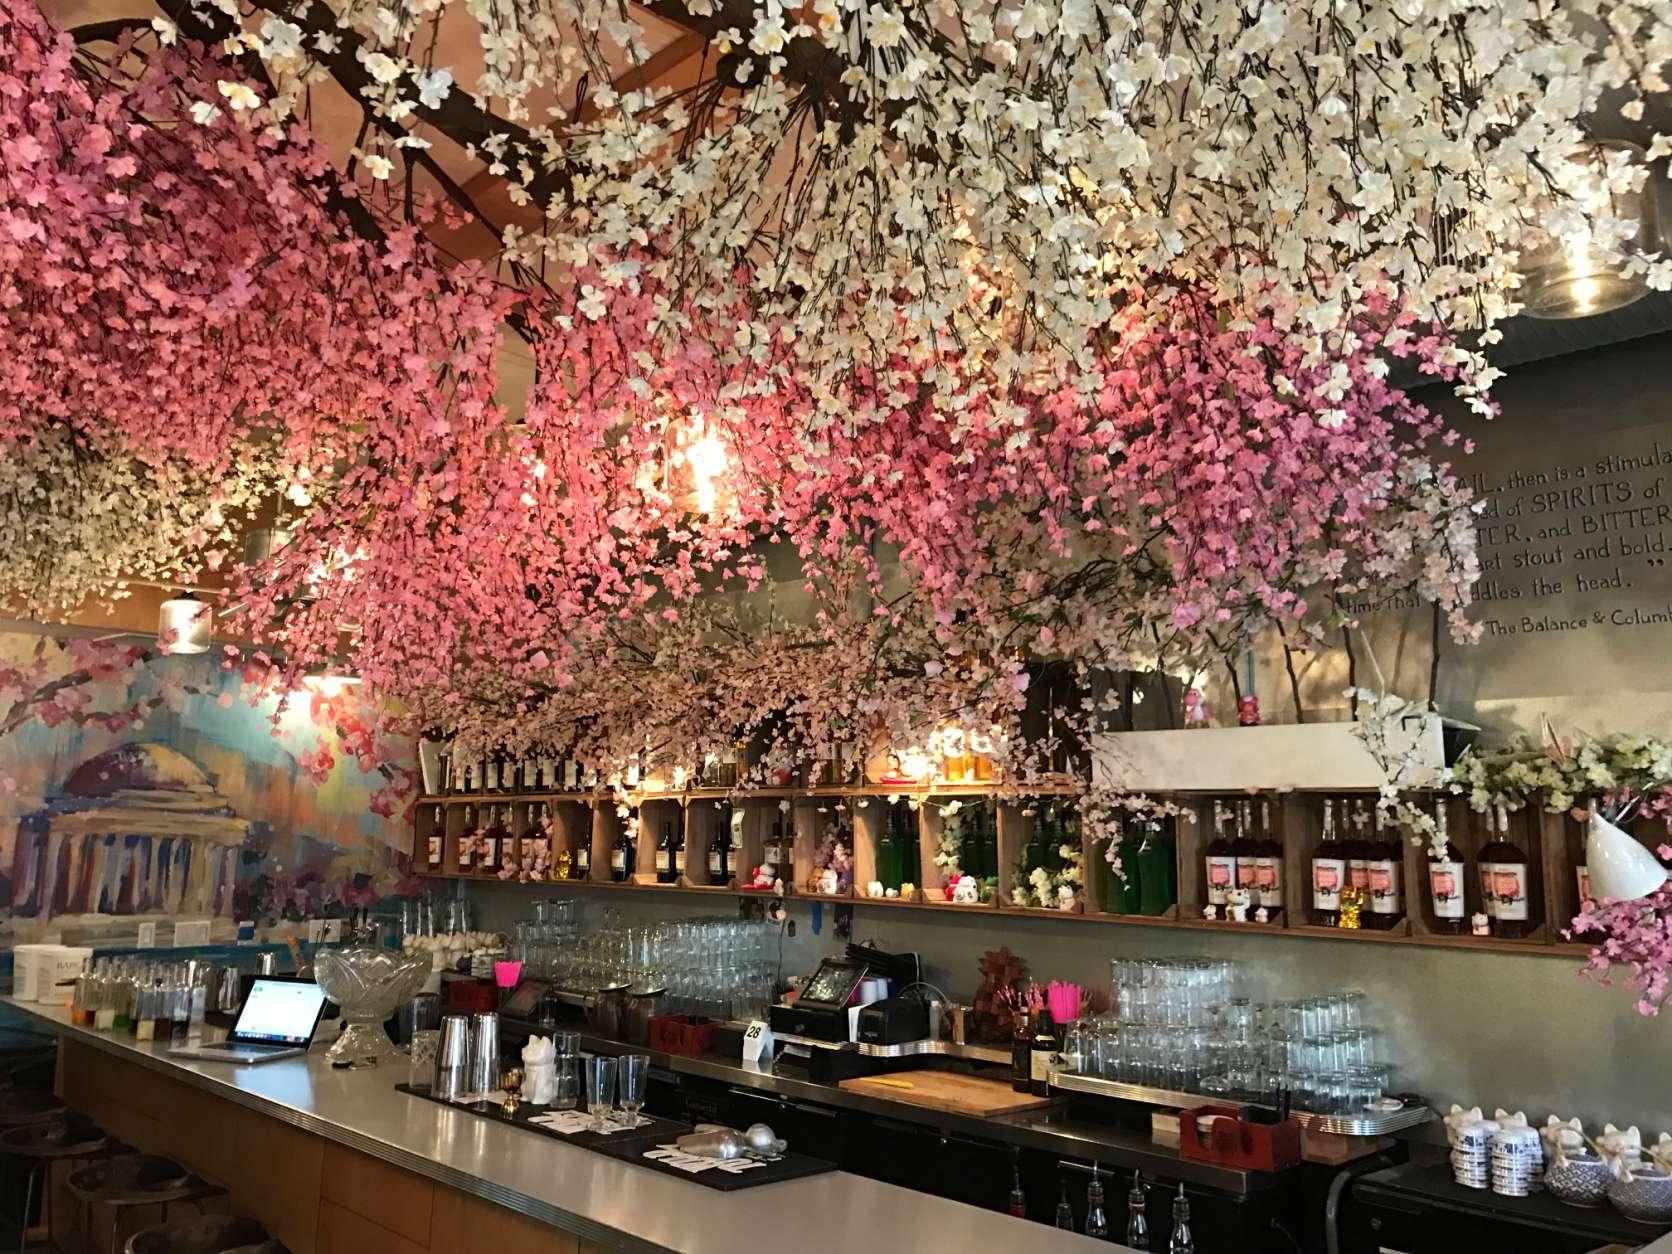 The Cherry Blossom Pop-Up Bar (or Cherry Blossom PUB) encompasses two themes. At Southern Efficiency, pink and white blossom branches creep up the side wall and hang from the ceiling. A mural of the Jefferson Memorial draped in cherry blossoms covers the back wall. (WTOP/Rachel Nania)